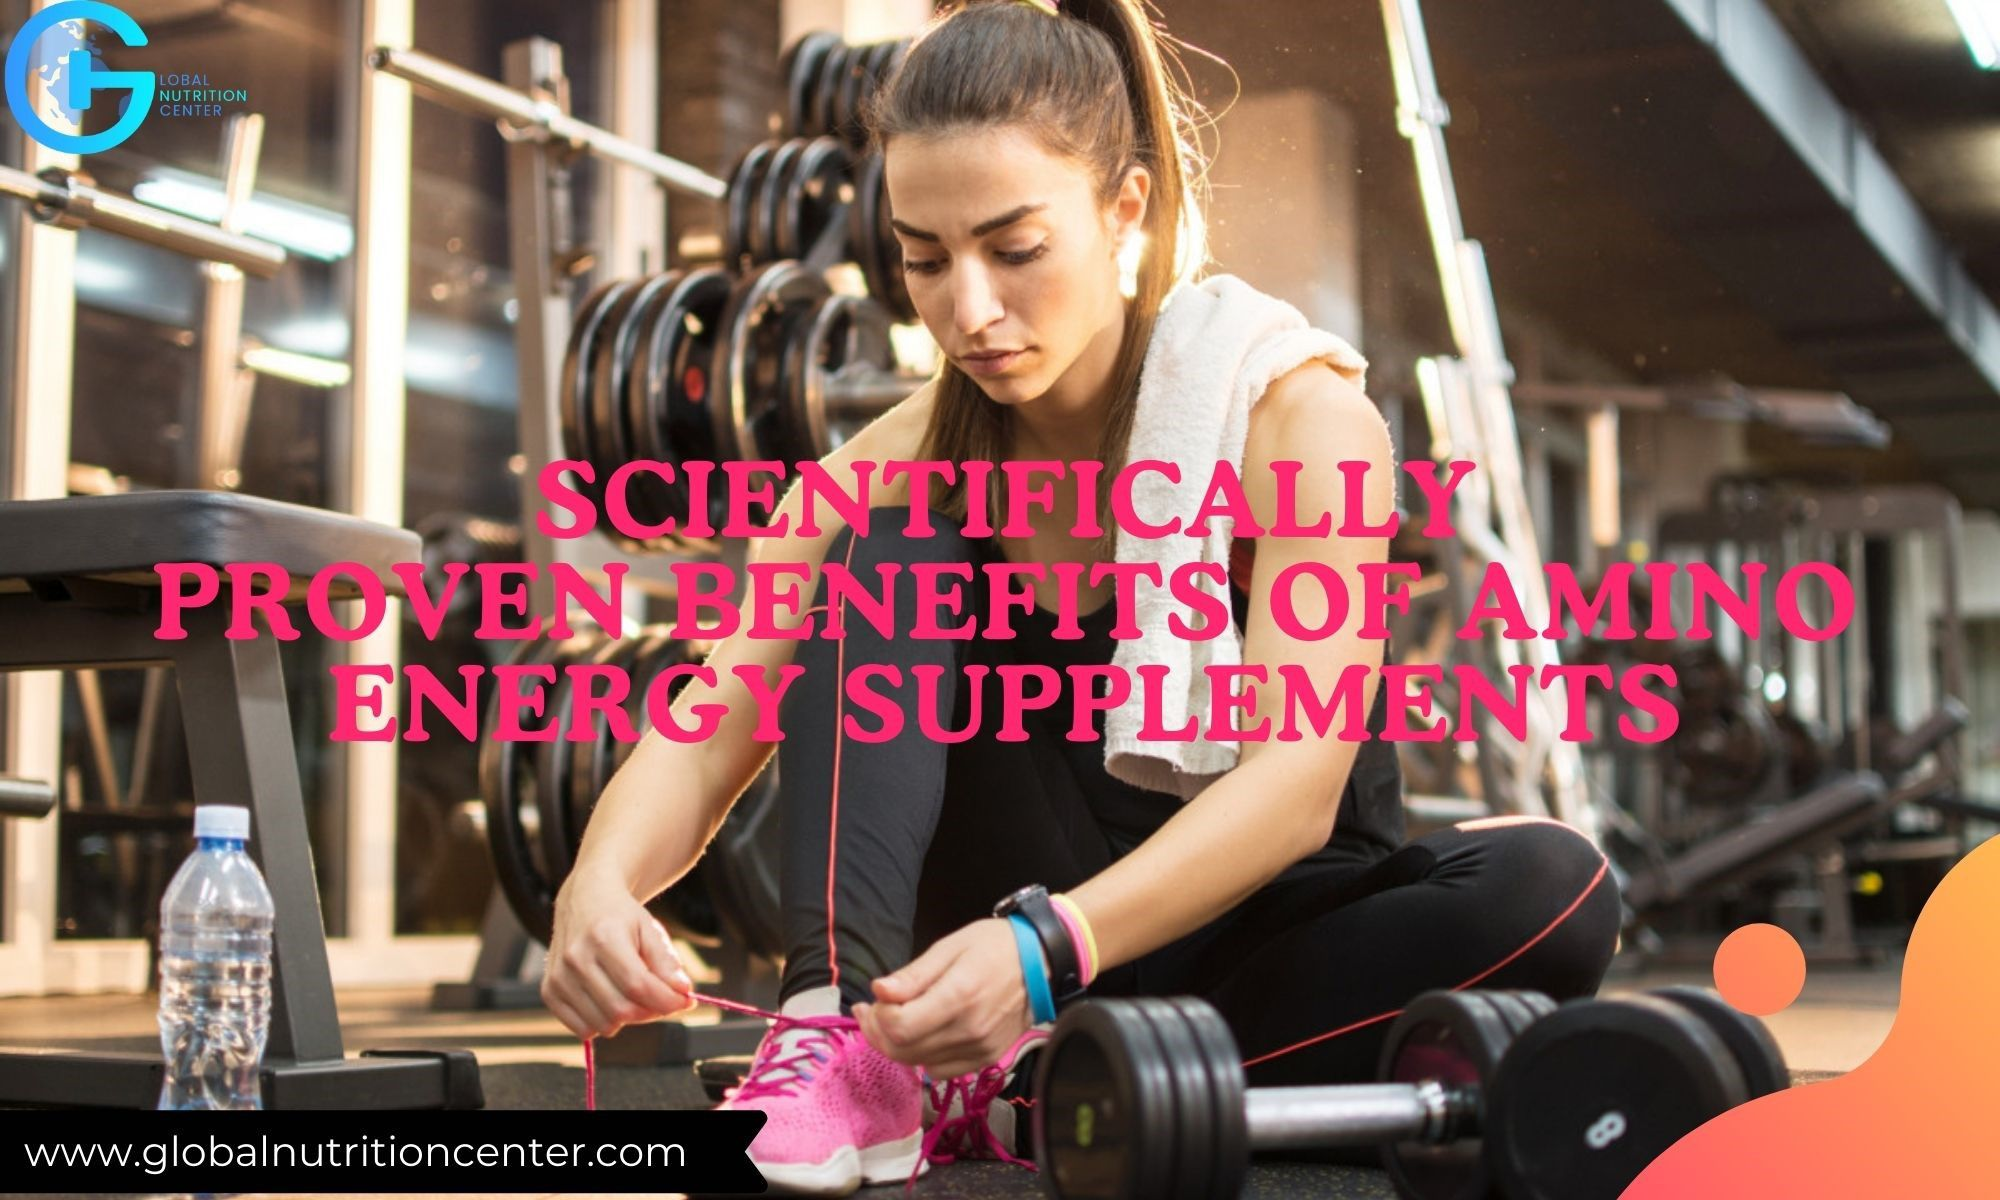 SCIENTIFICALLY PROVEN BENEFITS OF AMINO ENERGY SUPPLEMENTS